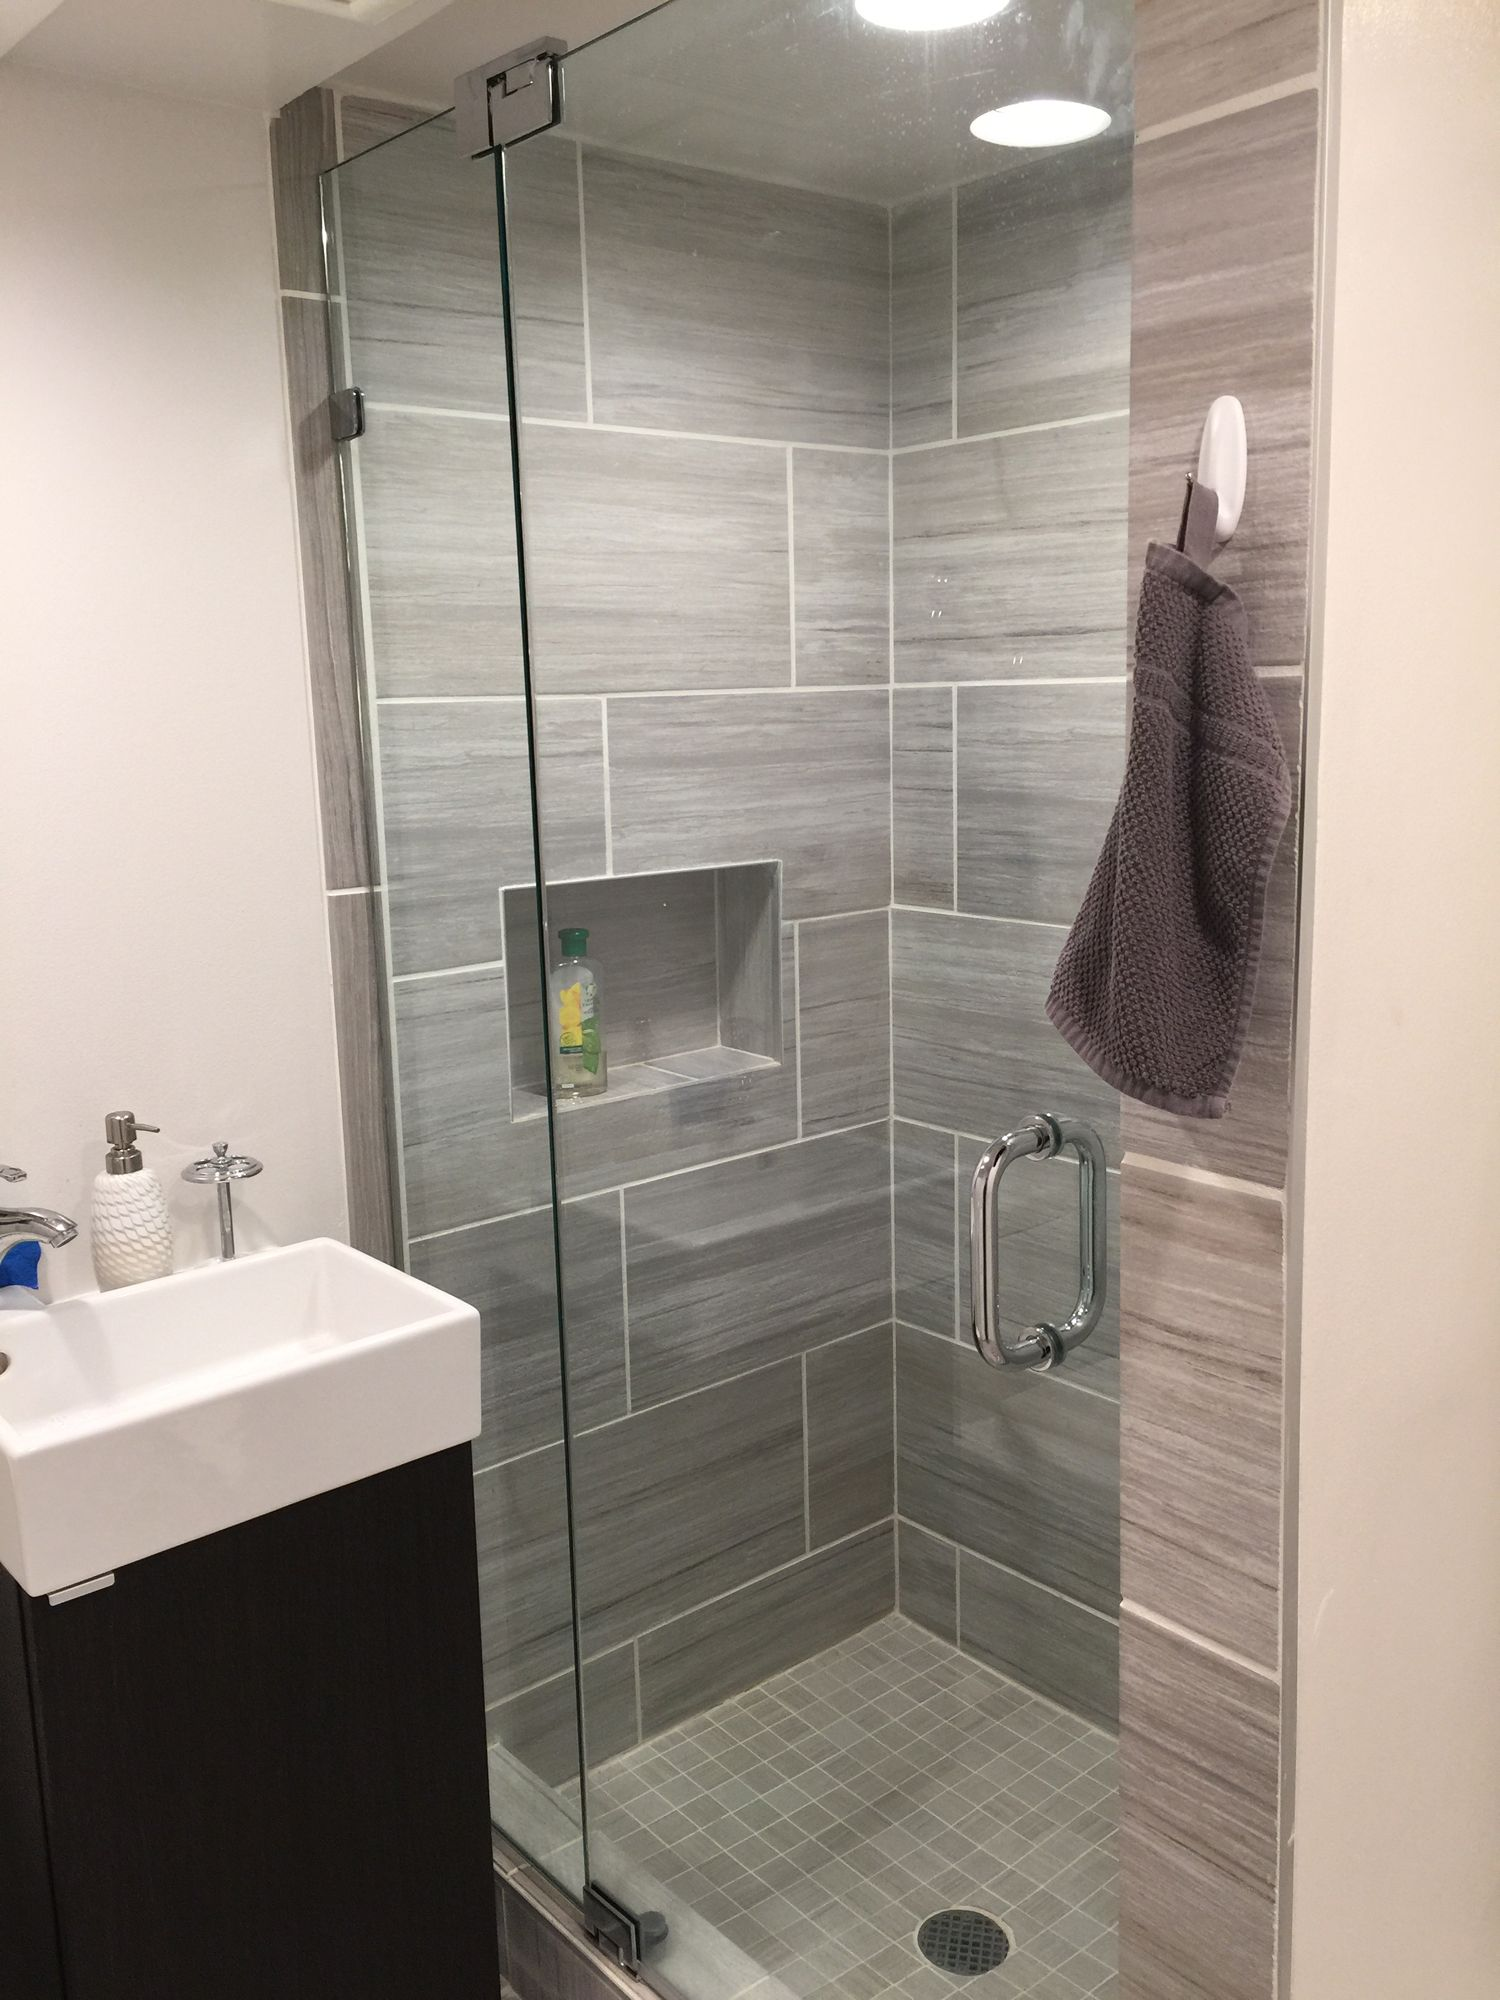 Small Bathroom Frameless Shower Door Installation Wayne Nj Shower Doors Bathroom Shower Doors Small Bathroom With Shower